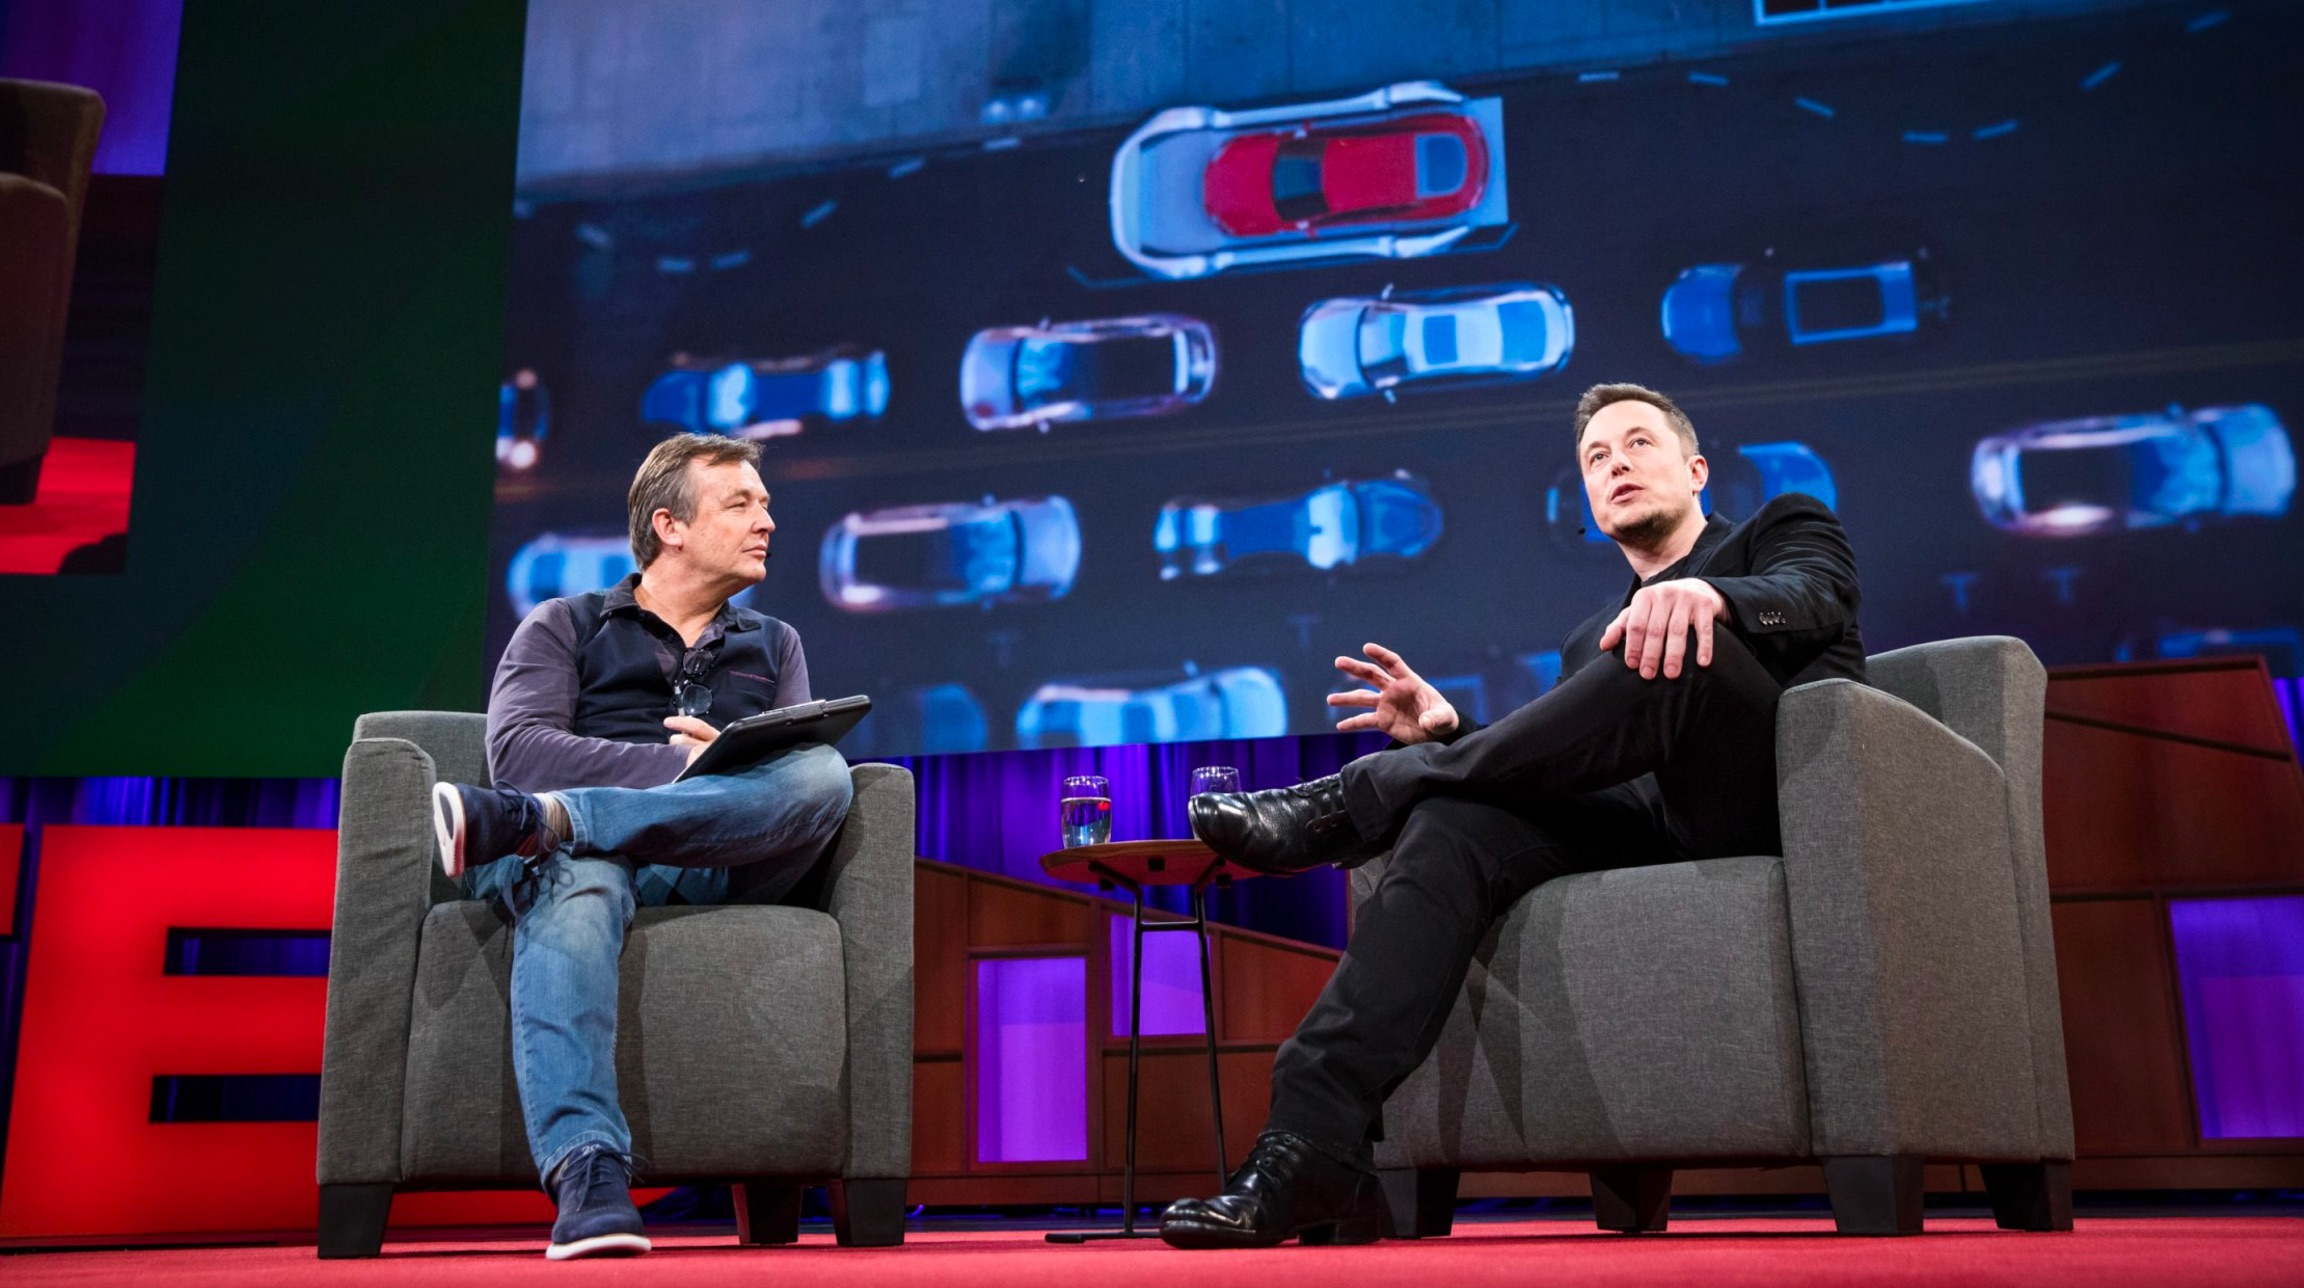 elon-musk-ted2017-vancouver-boring-co